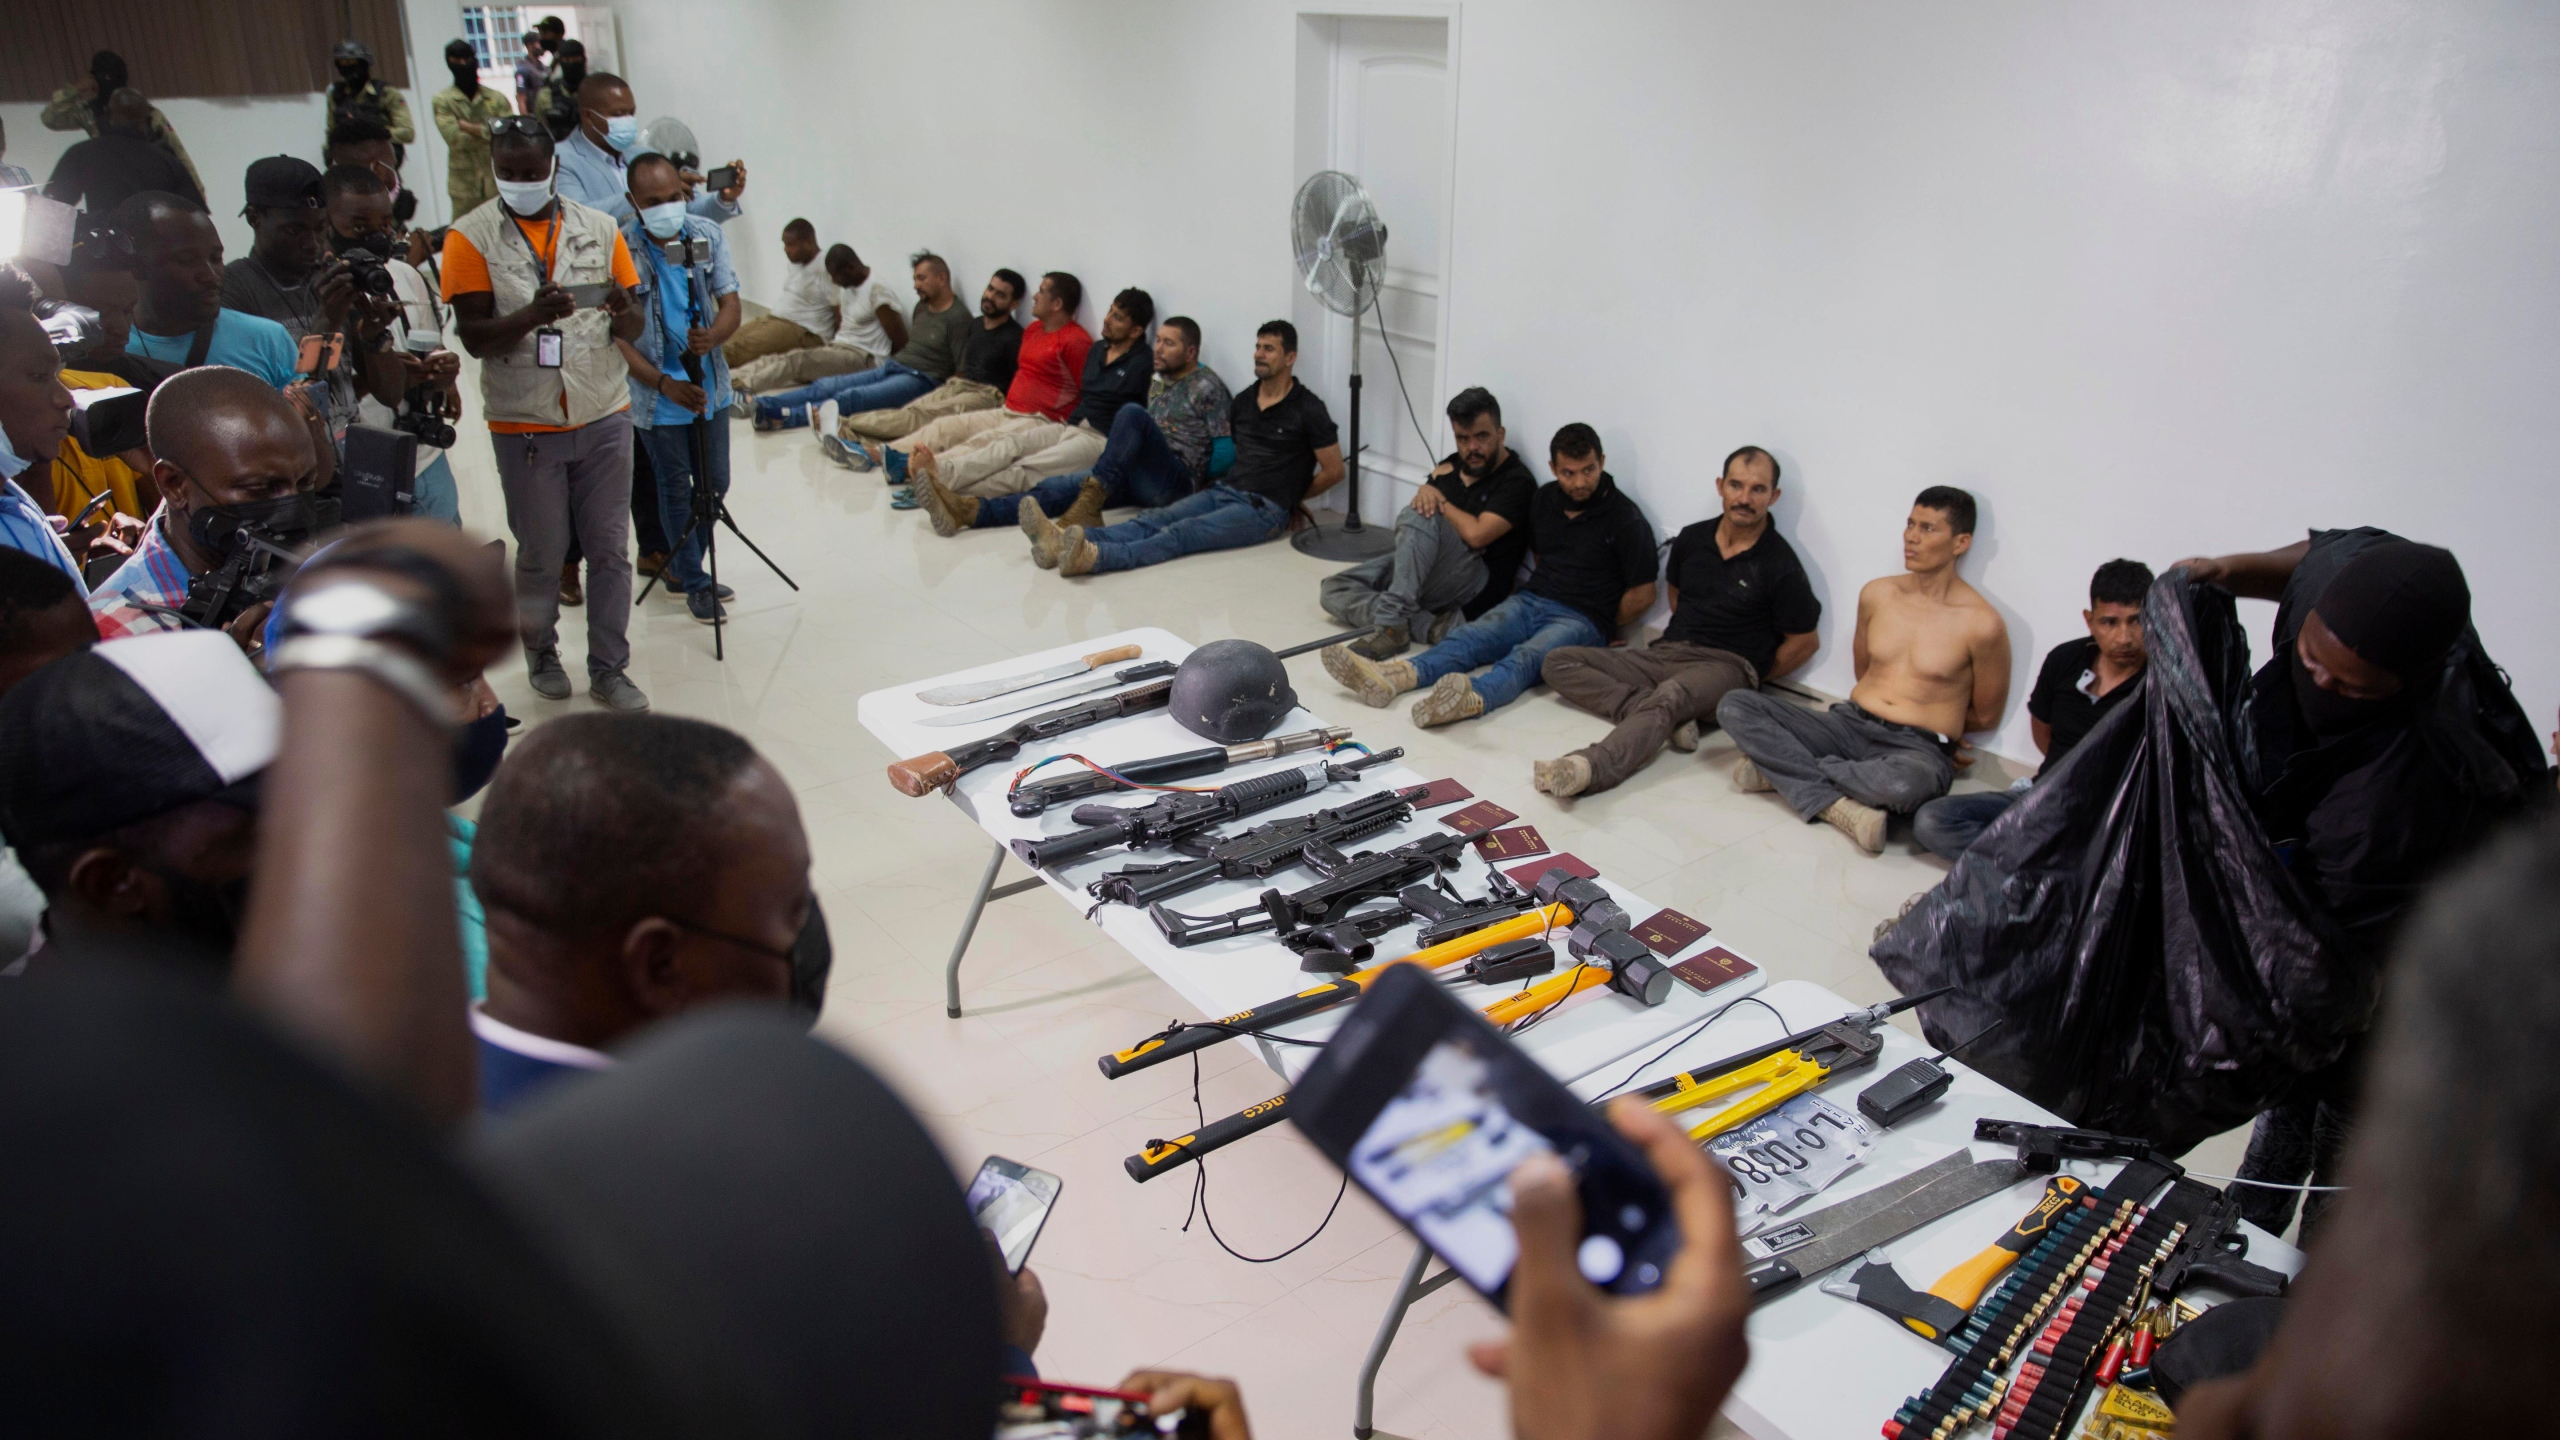 In this July 8, 2021 file photo, suspects in the assassination of Haiti's President Jovenel Moise are shown to the media, along with the weapons and equipment they allegedly used in the attack, at police headquarters in Port-au-Prince. (Jean Marc Hervé Abélard/Associated Press)